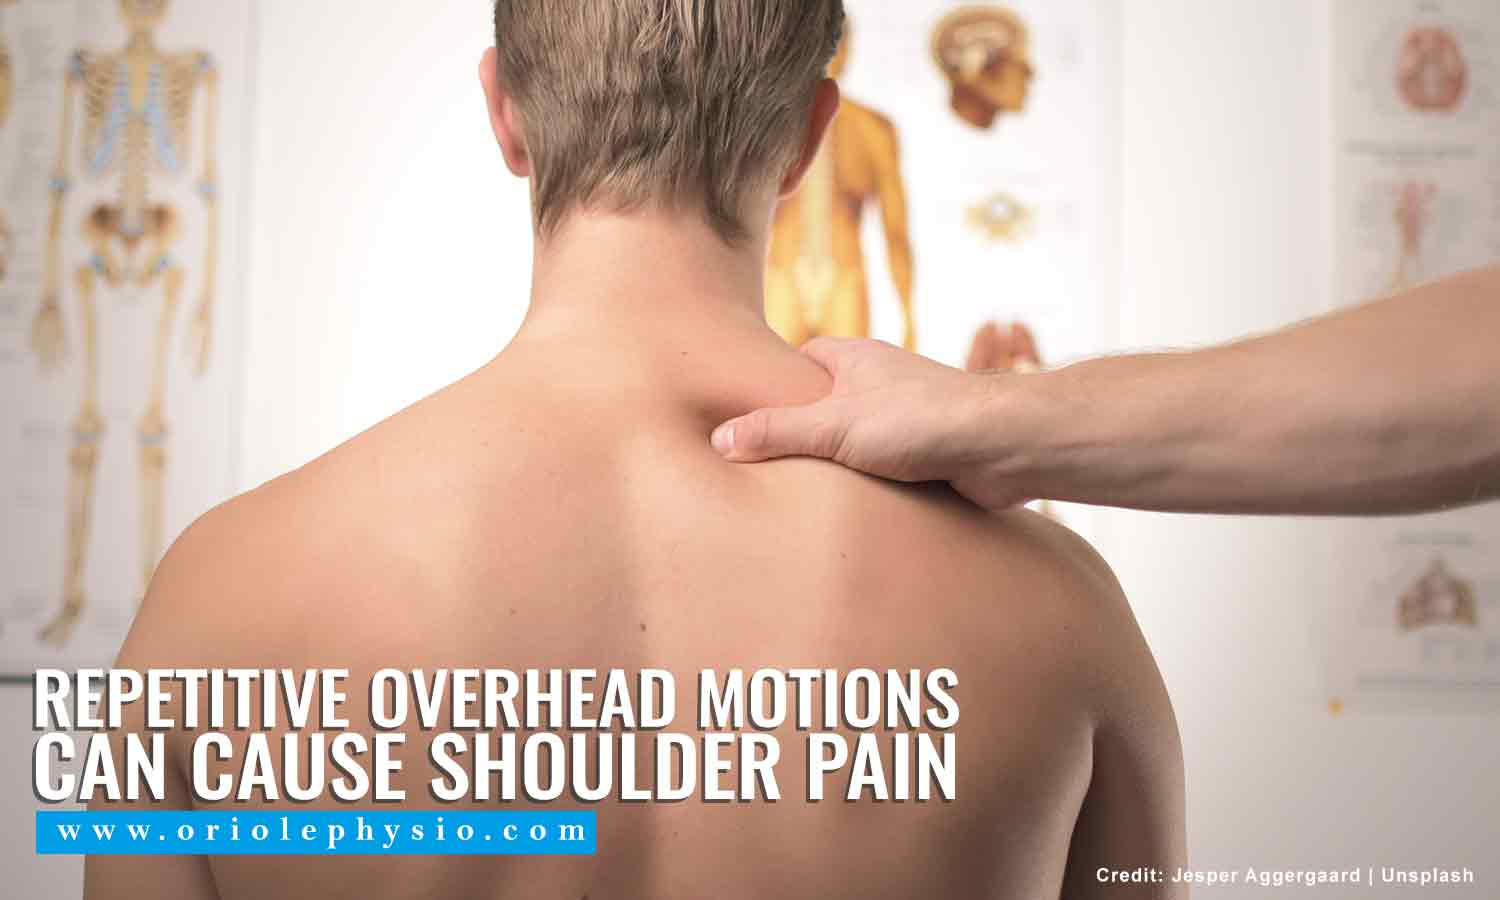 Repetitive overhead motions can cause shoulder pain